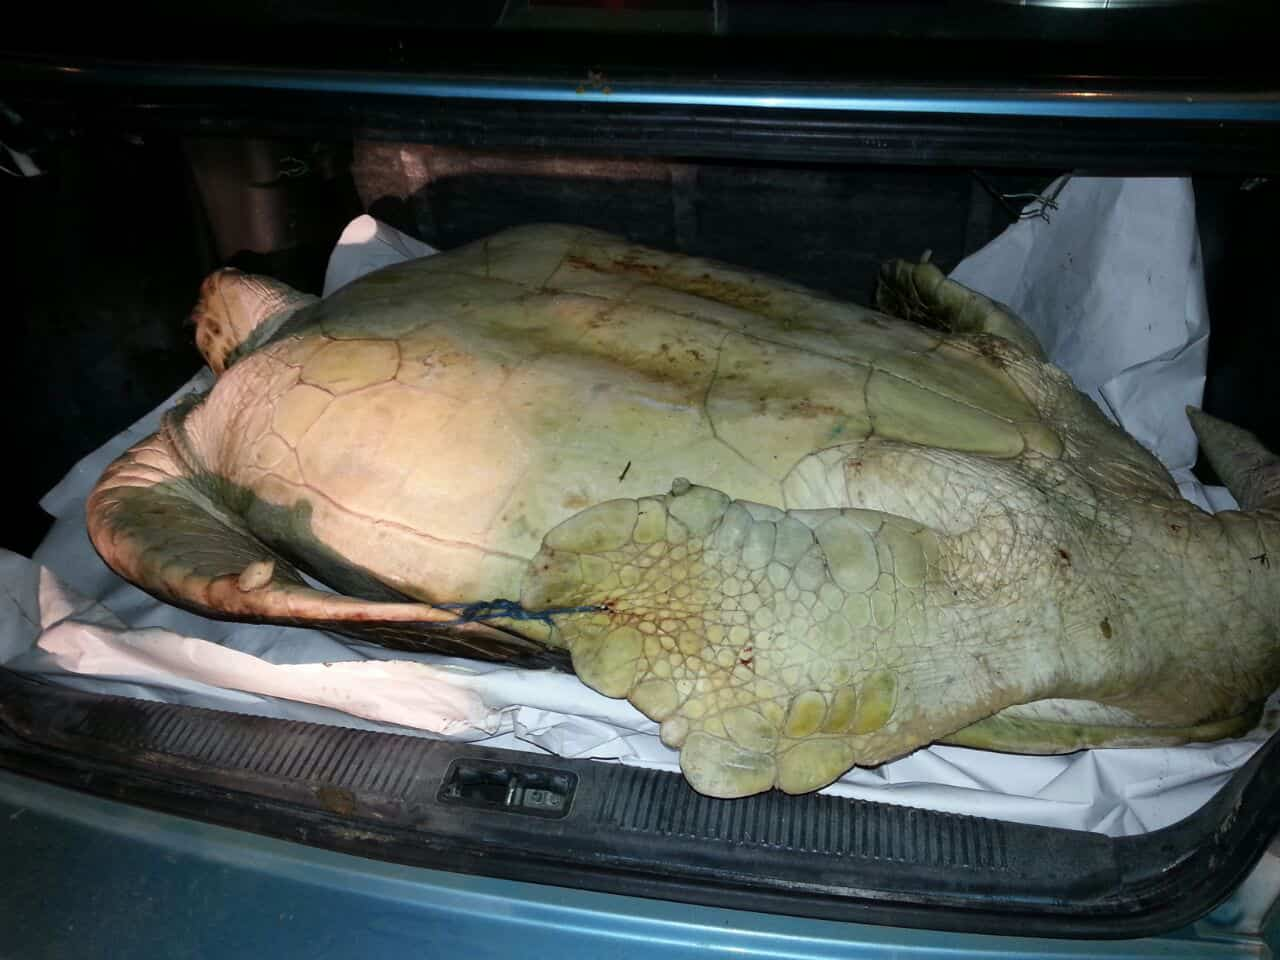 A 100-kg green sea turtle found tied in the trunk of a car in Limón on July 3, 2015.